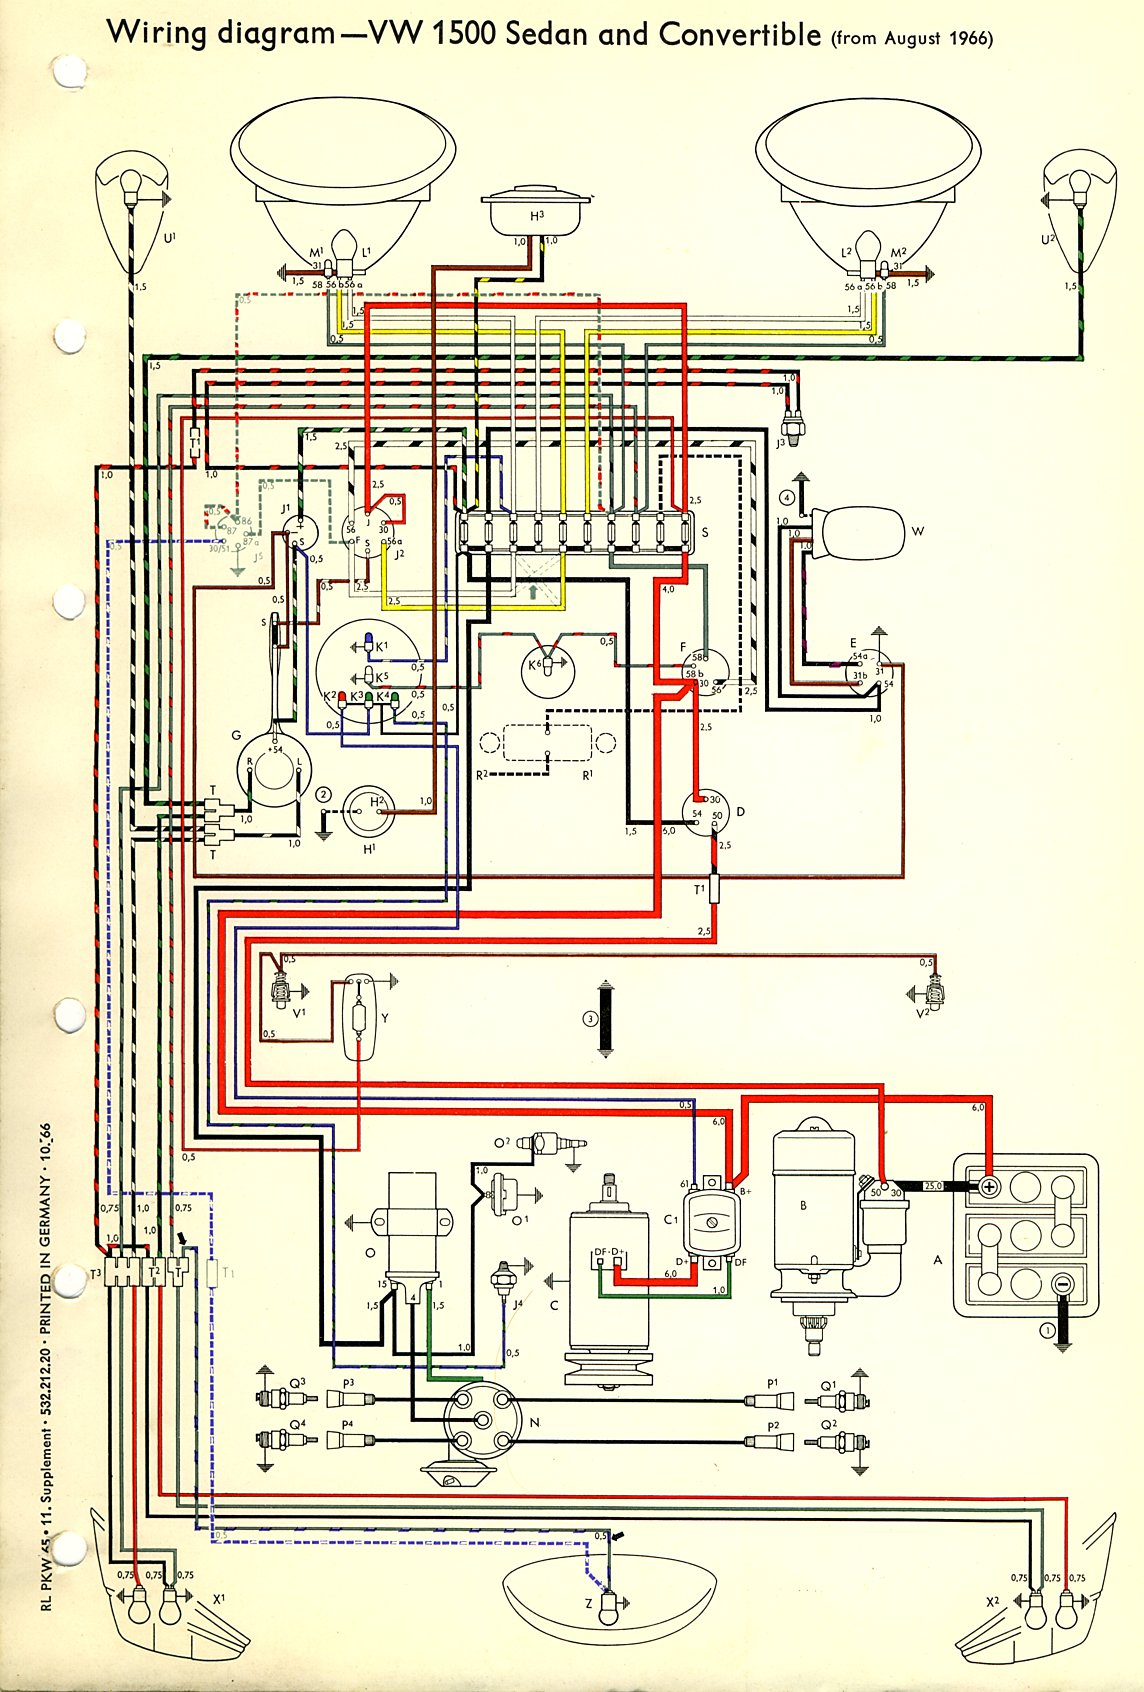 bug_67 67 vw bus wiring harness 71 vw wiring harness \u2022 wiring diagrams Wiring Harness Diagram at gsmportal.co